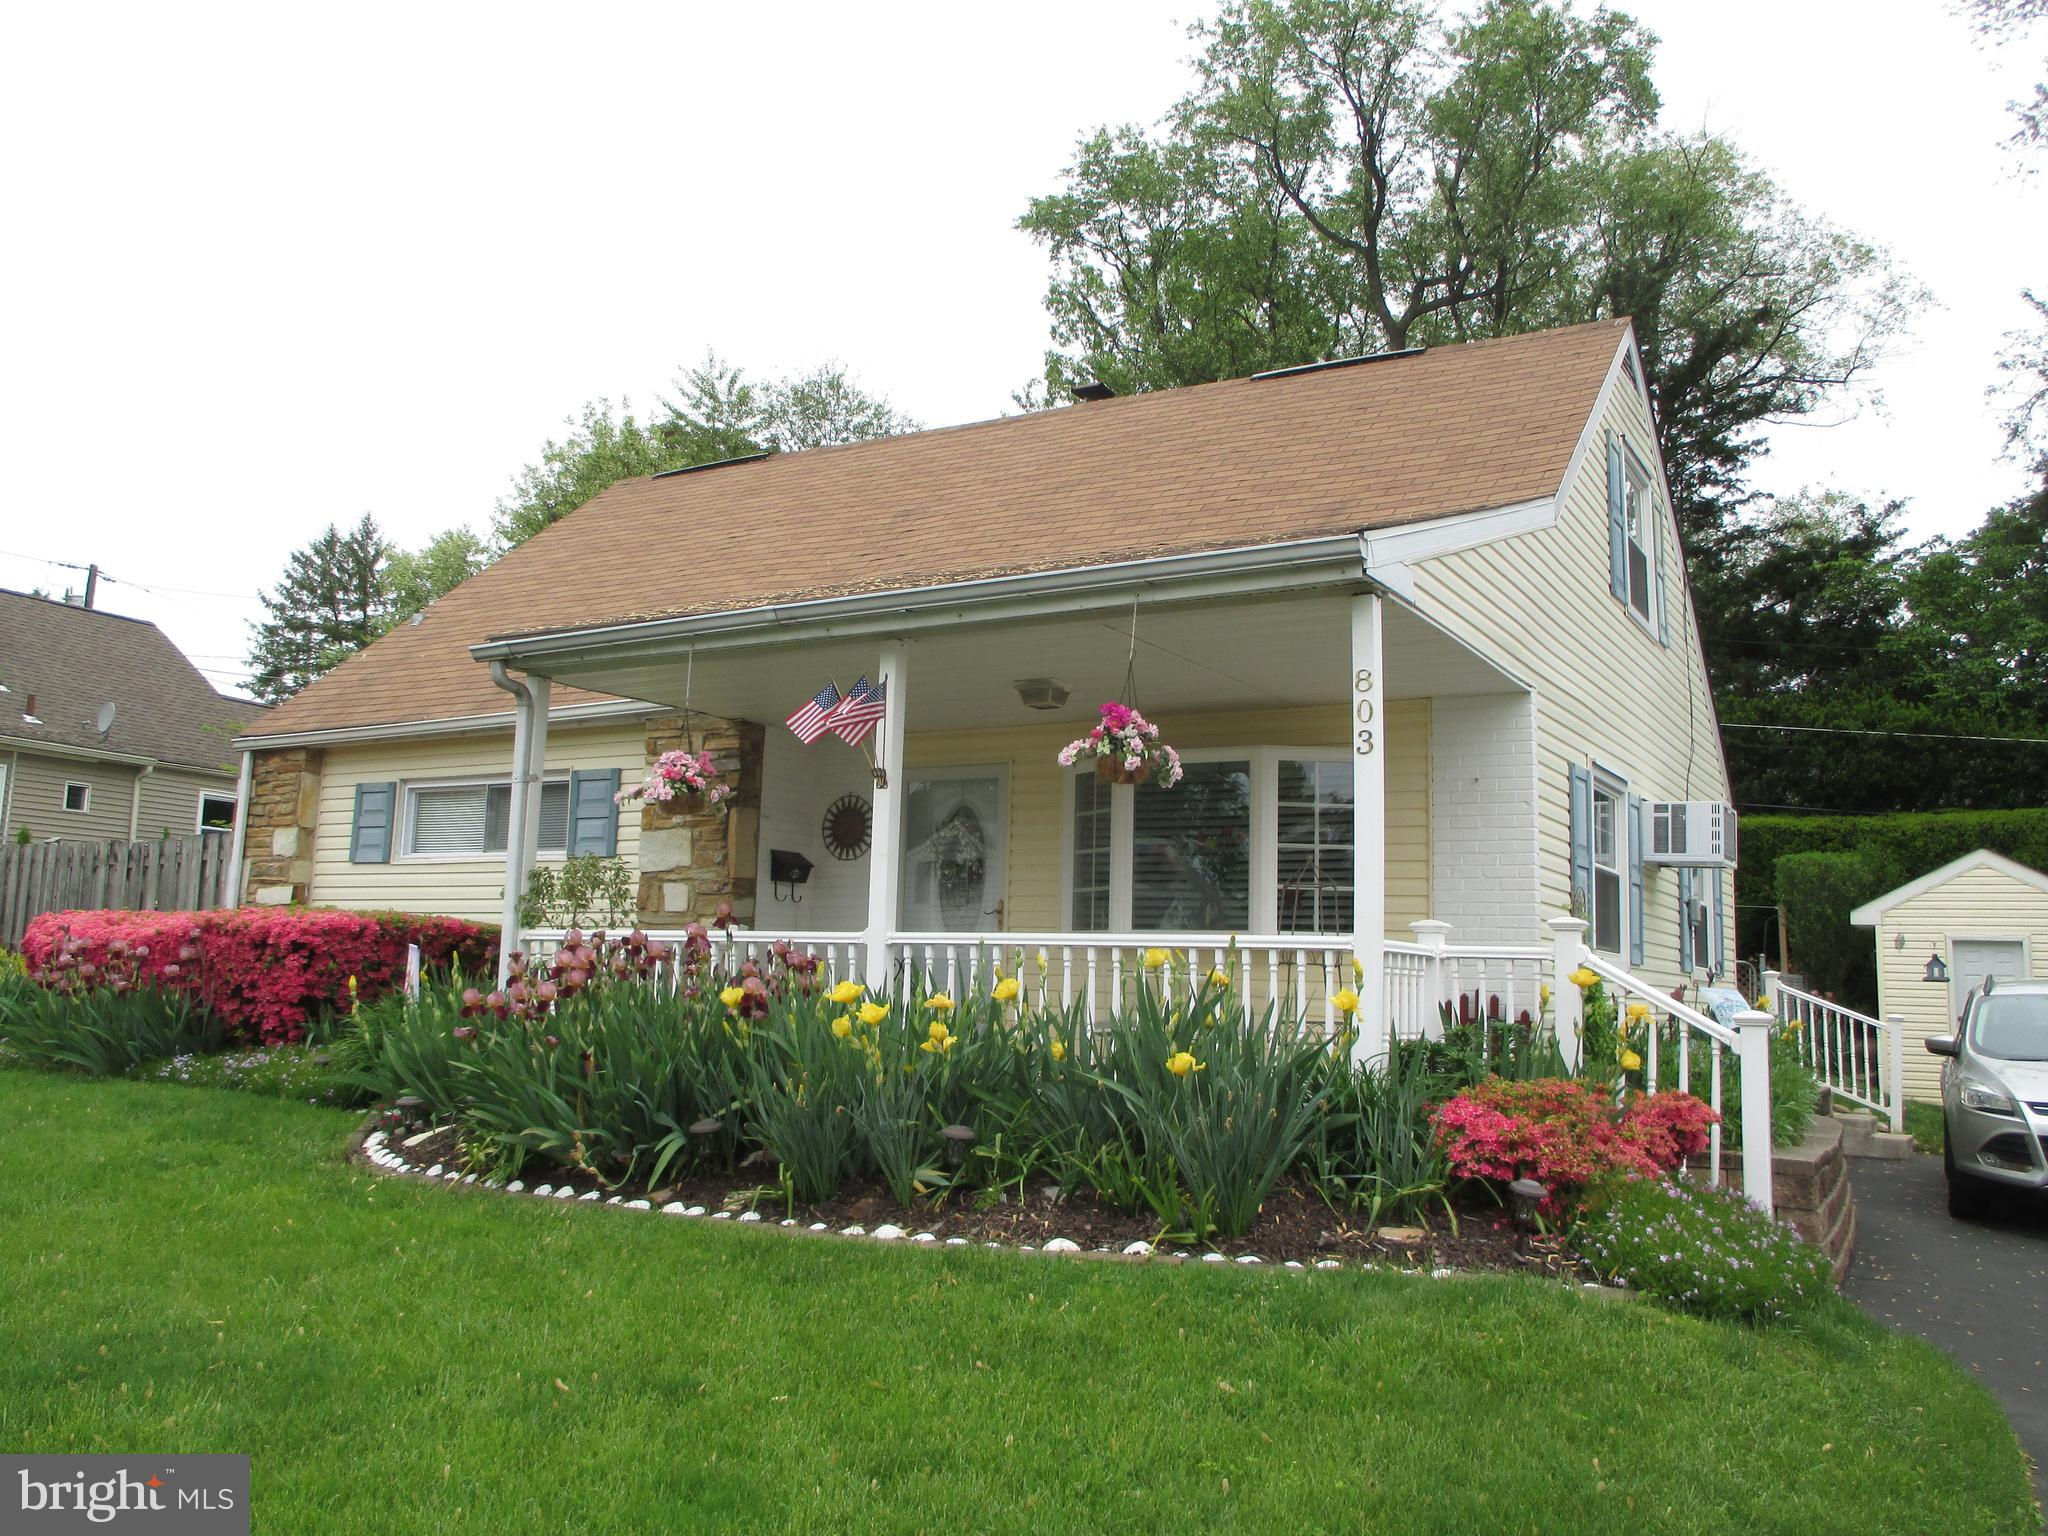 19020 4 Bedroom Home For Sale